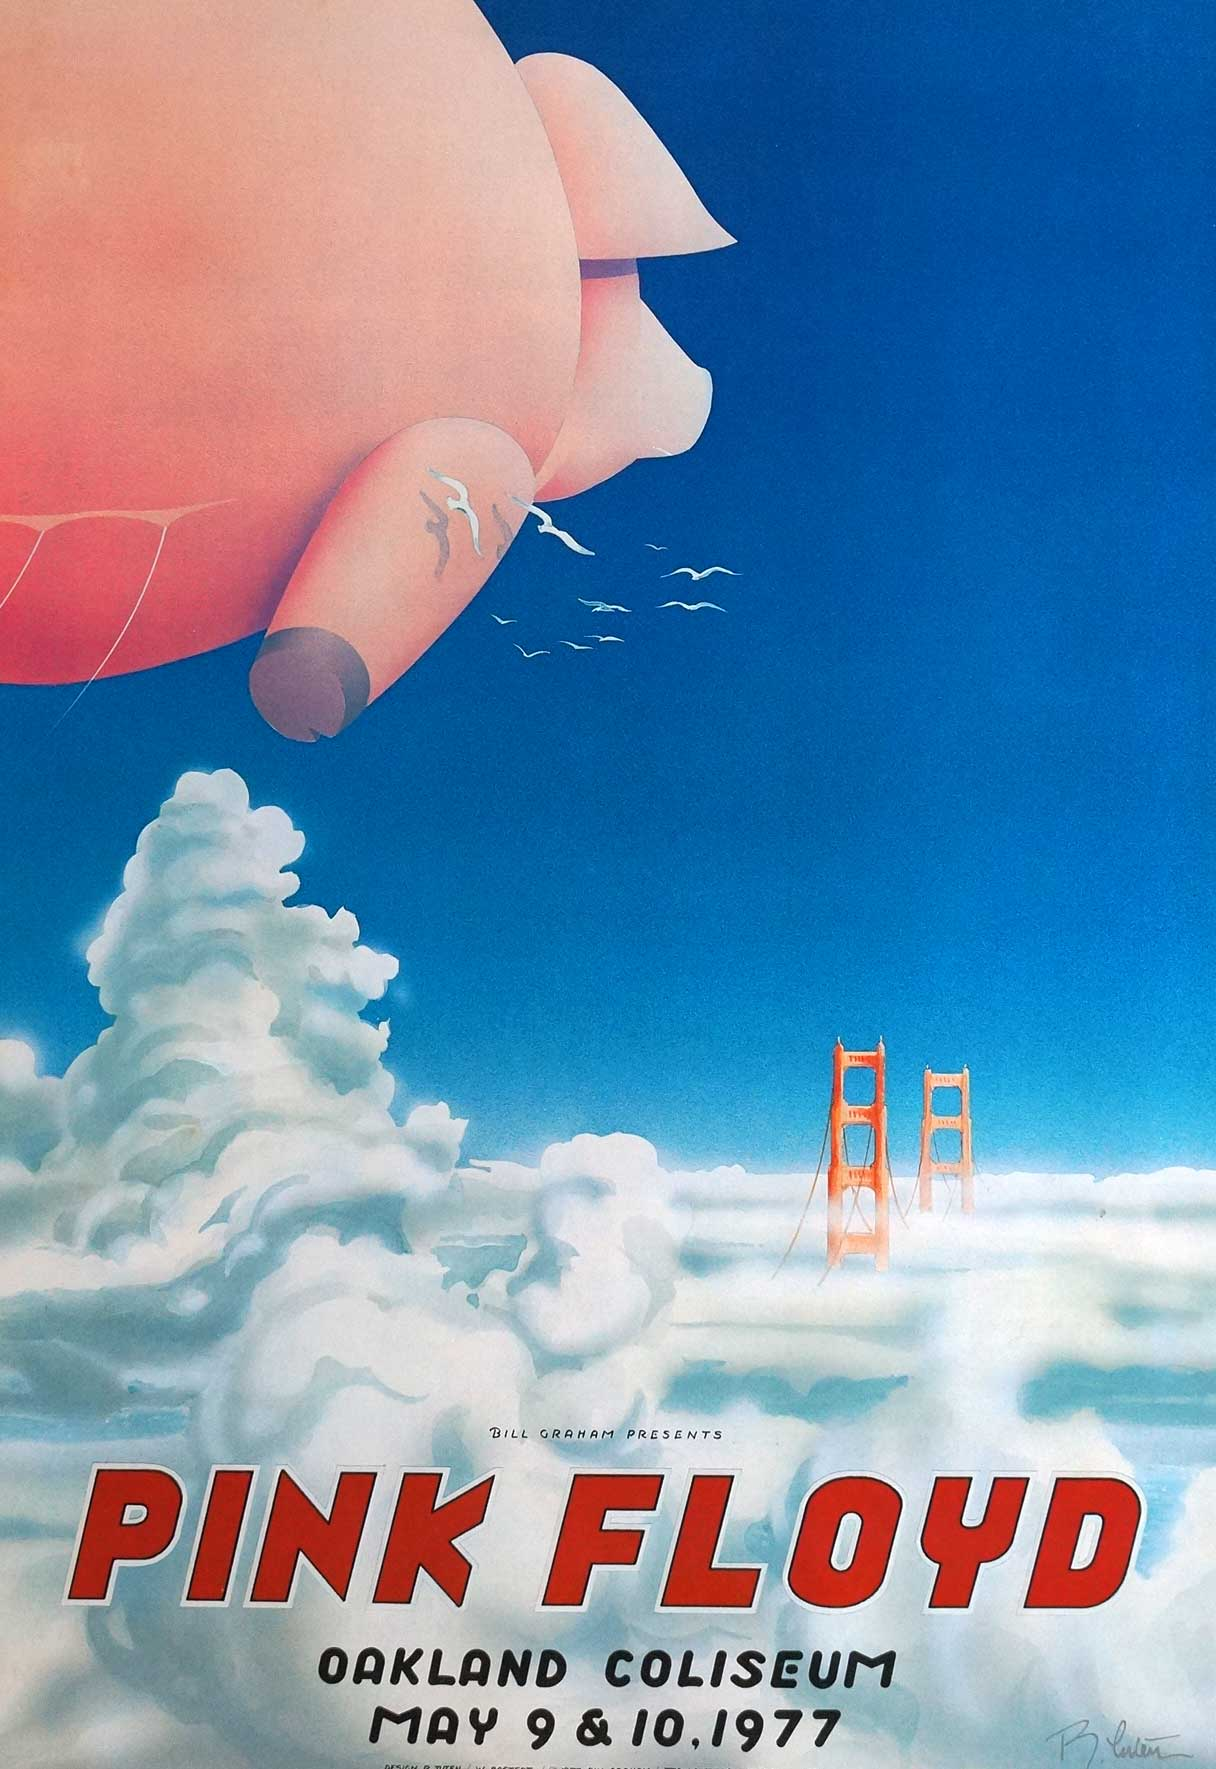 Pink Floyd at The Oakland Coliseum Movie Poster, 1977